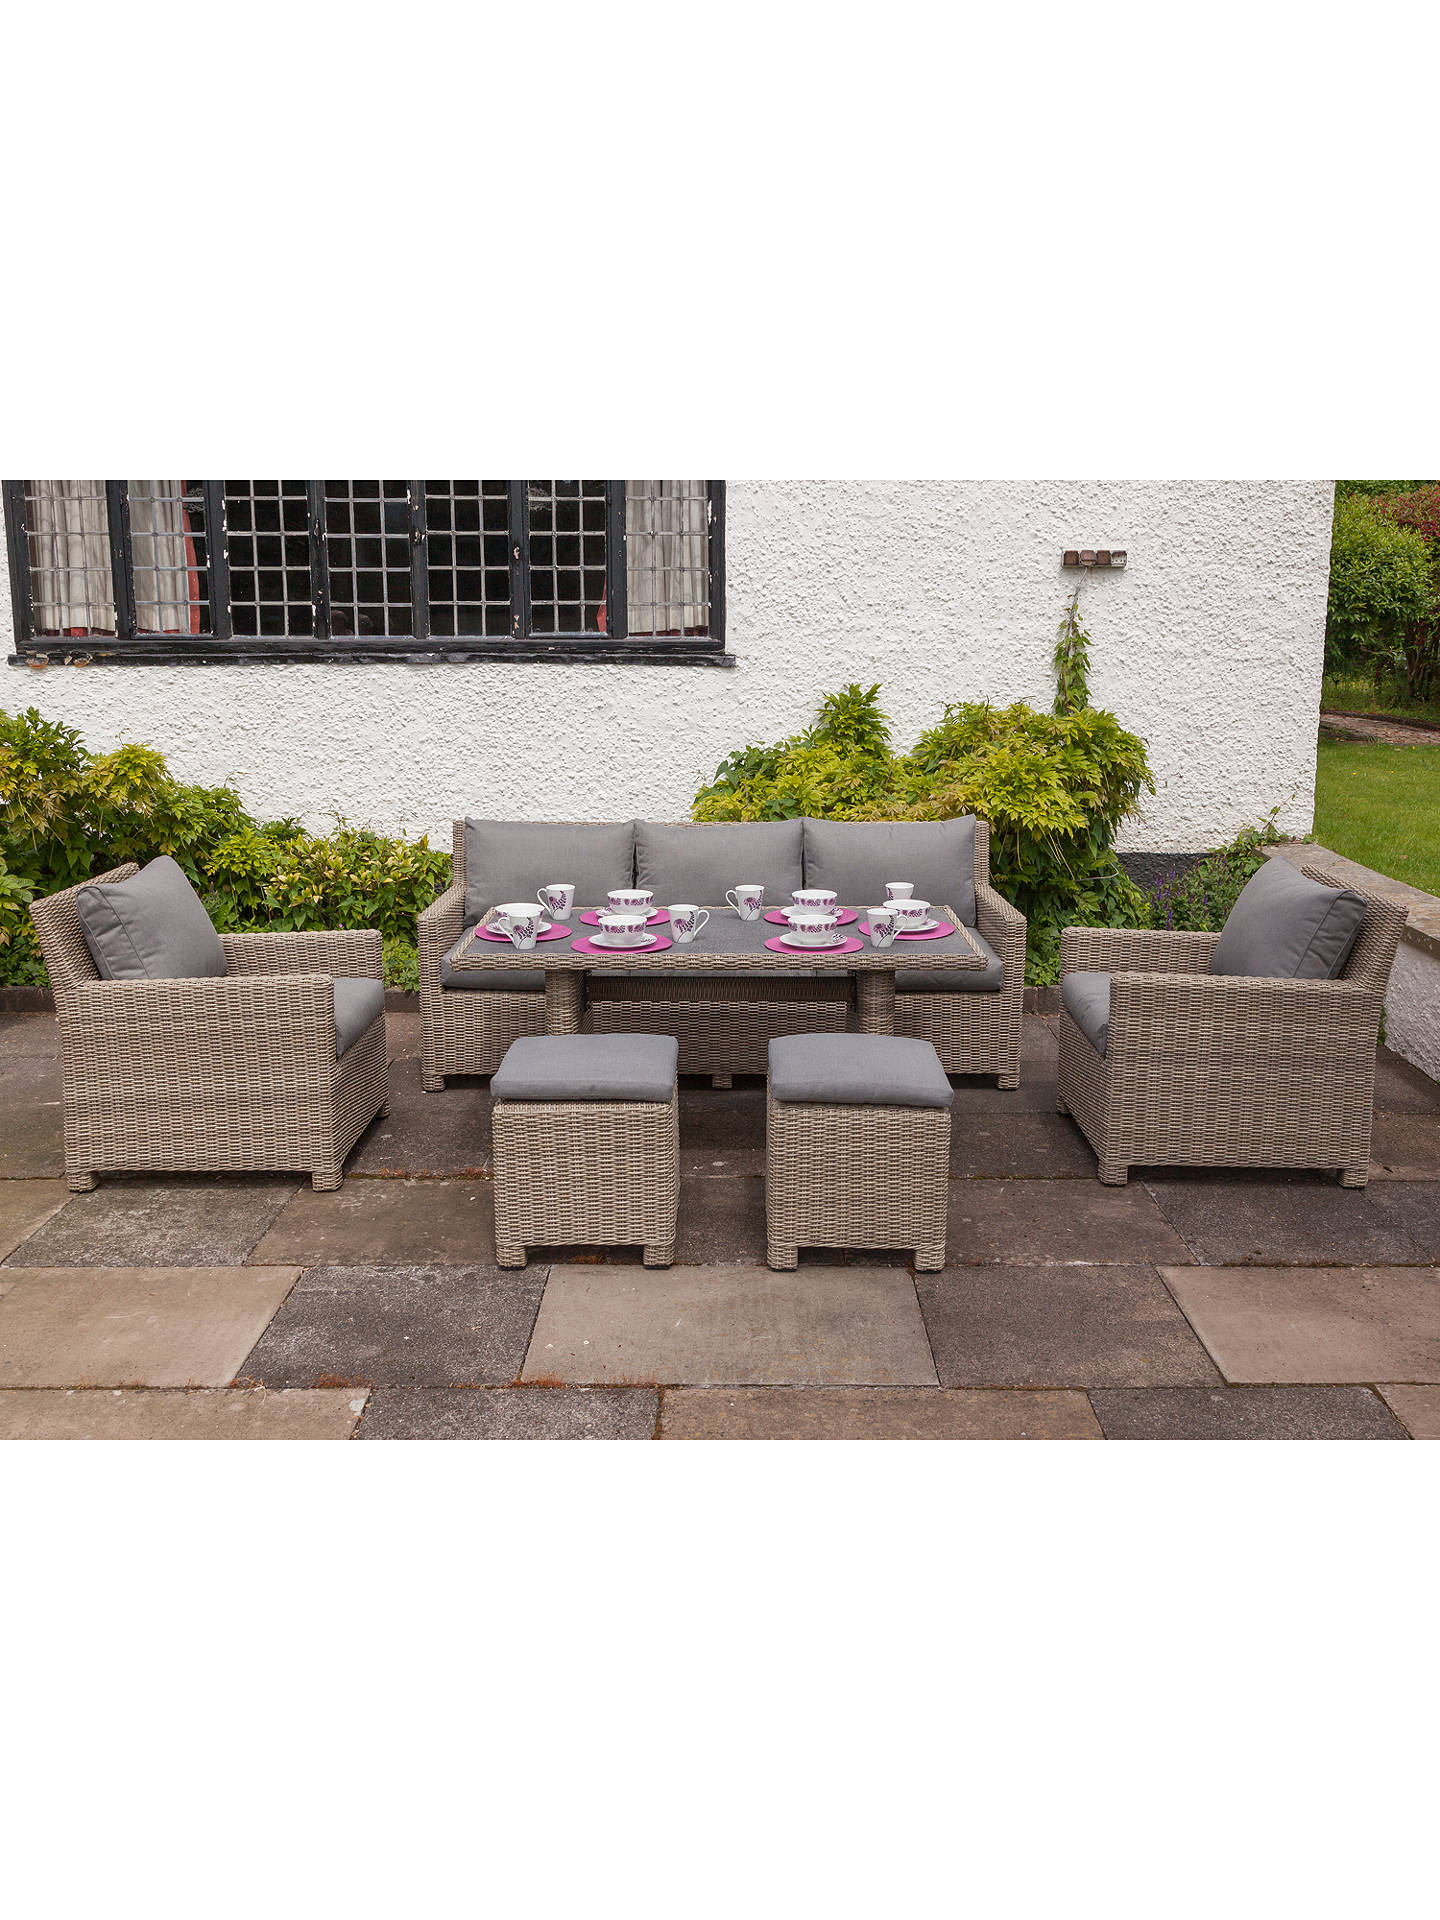 BuyRoyalcraft Wentworth 7-Seater Garden Modular Sofa Dining Table and Chairs Set Online at johnlewis.com